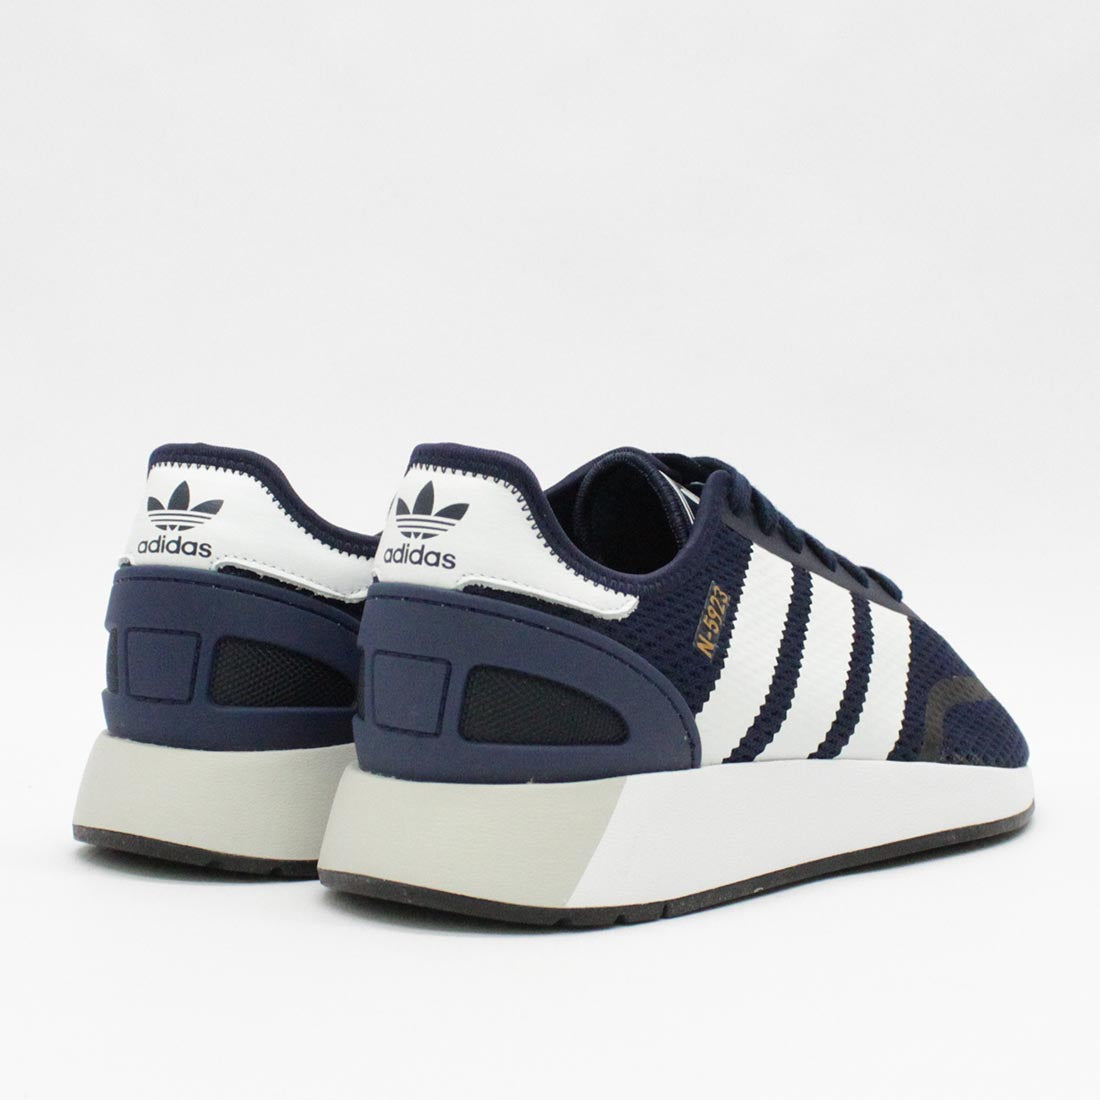 7a59d297876 Adidas Originals N-5923 Navy DB0961